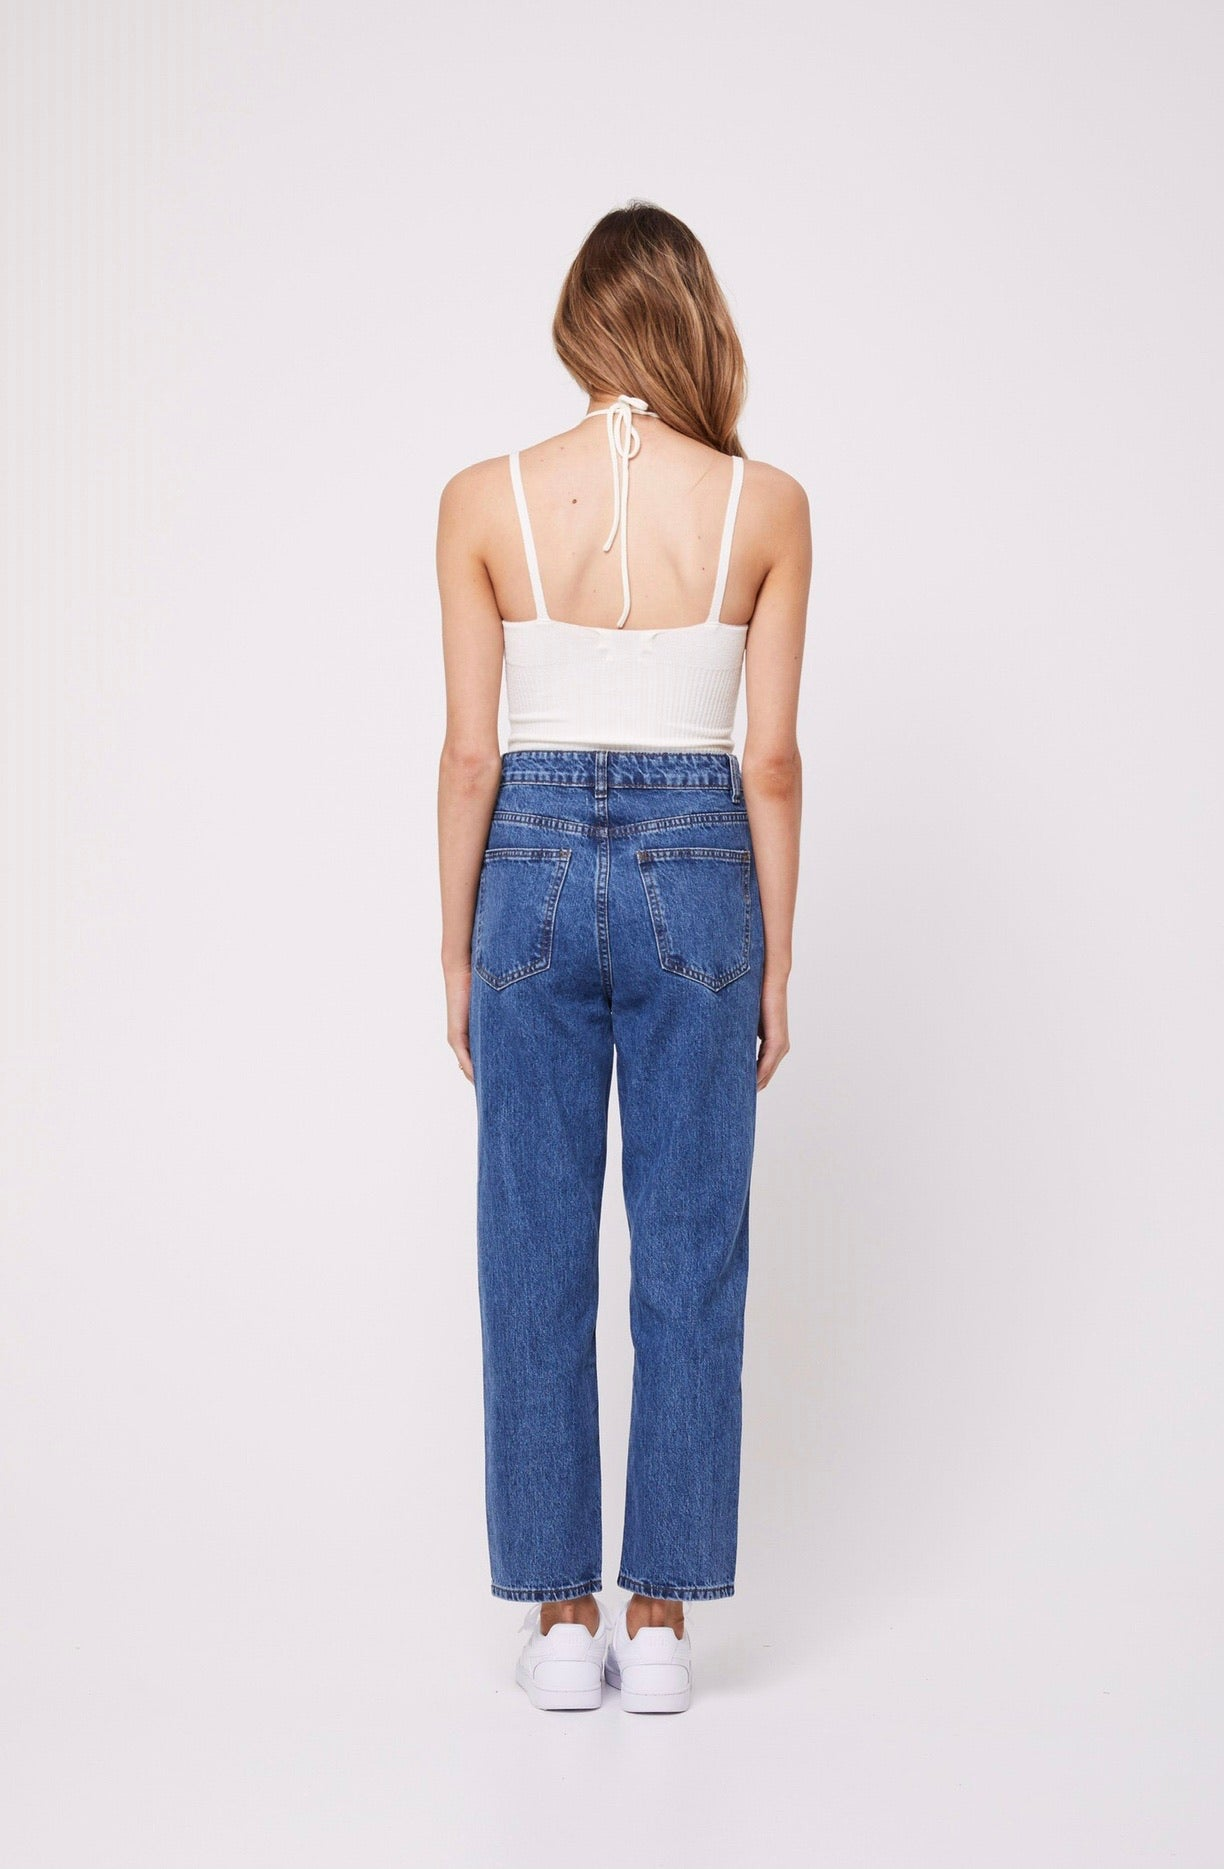 Rozalia X Atoir - The Denim Jeans - Washed Blue